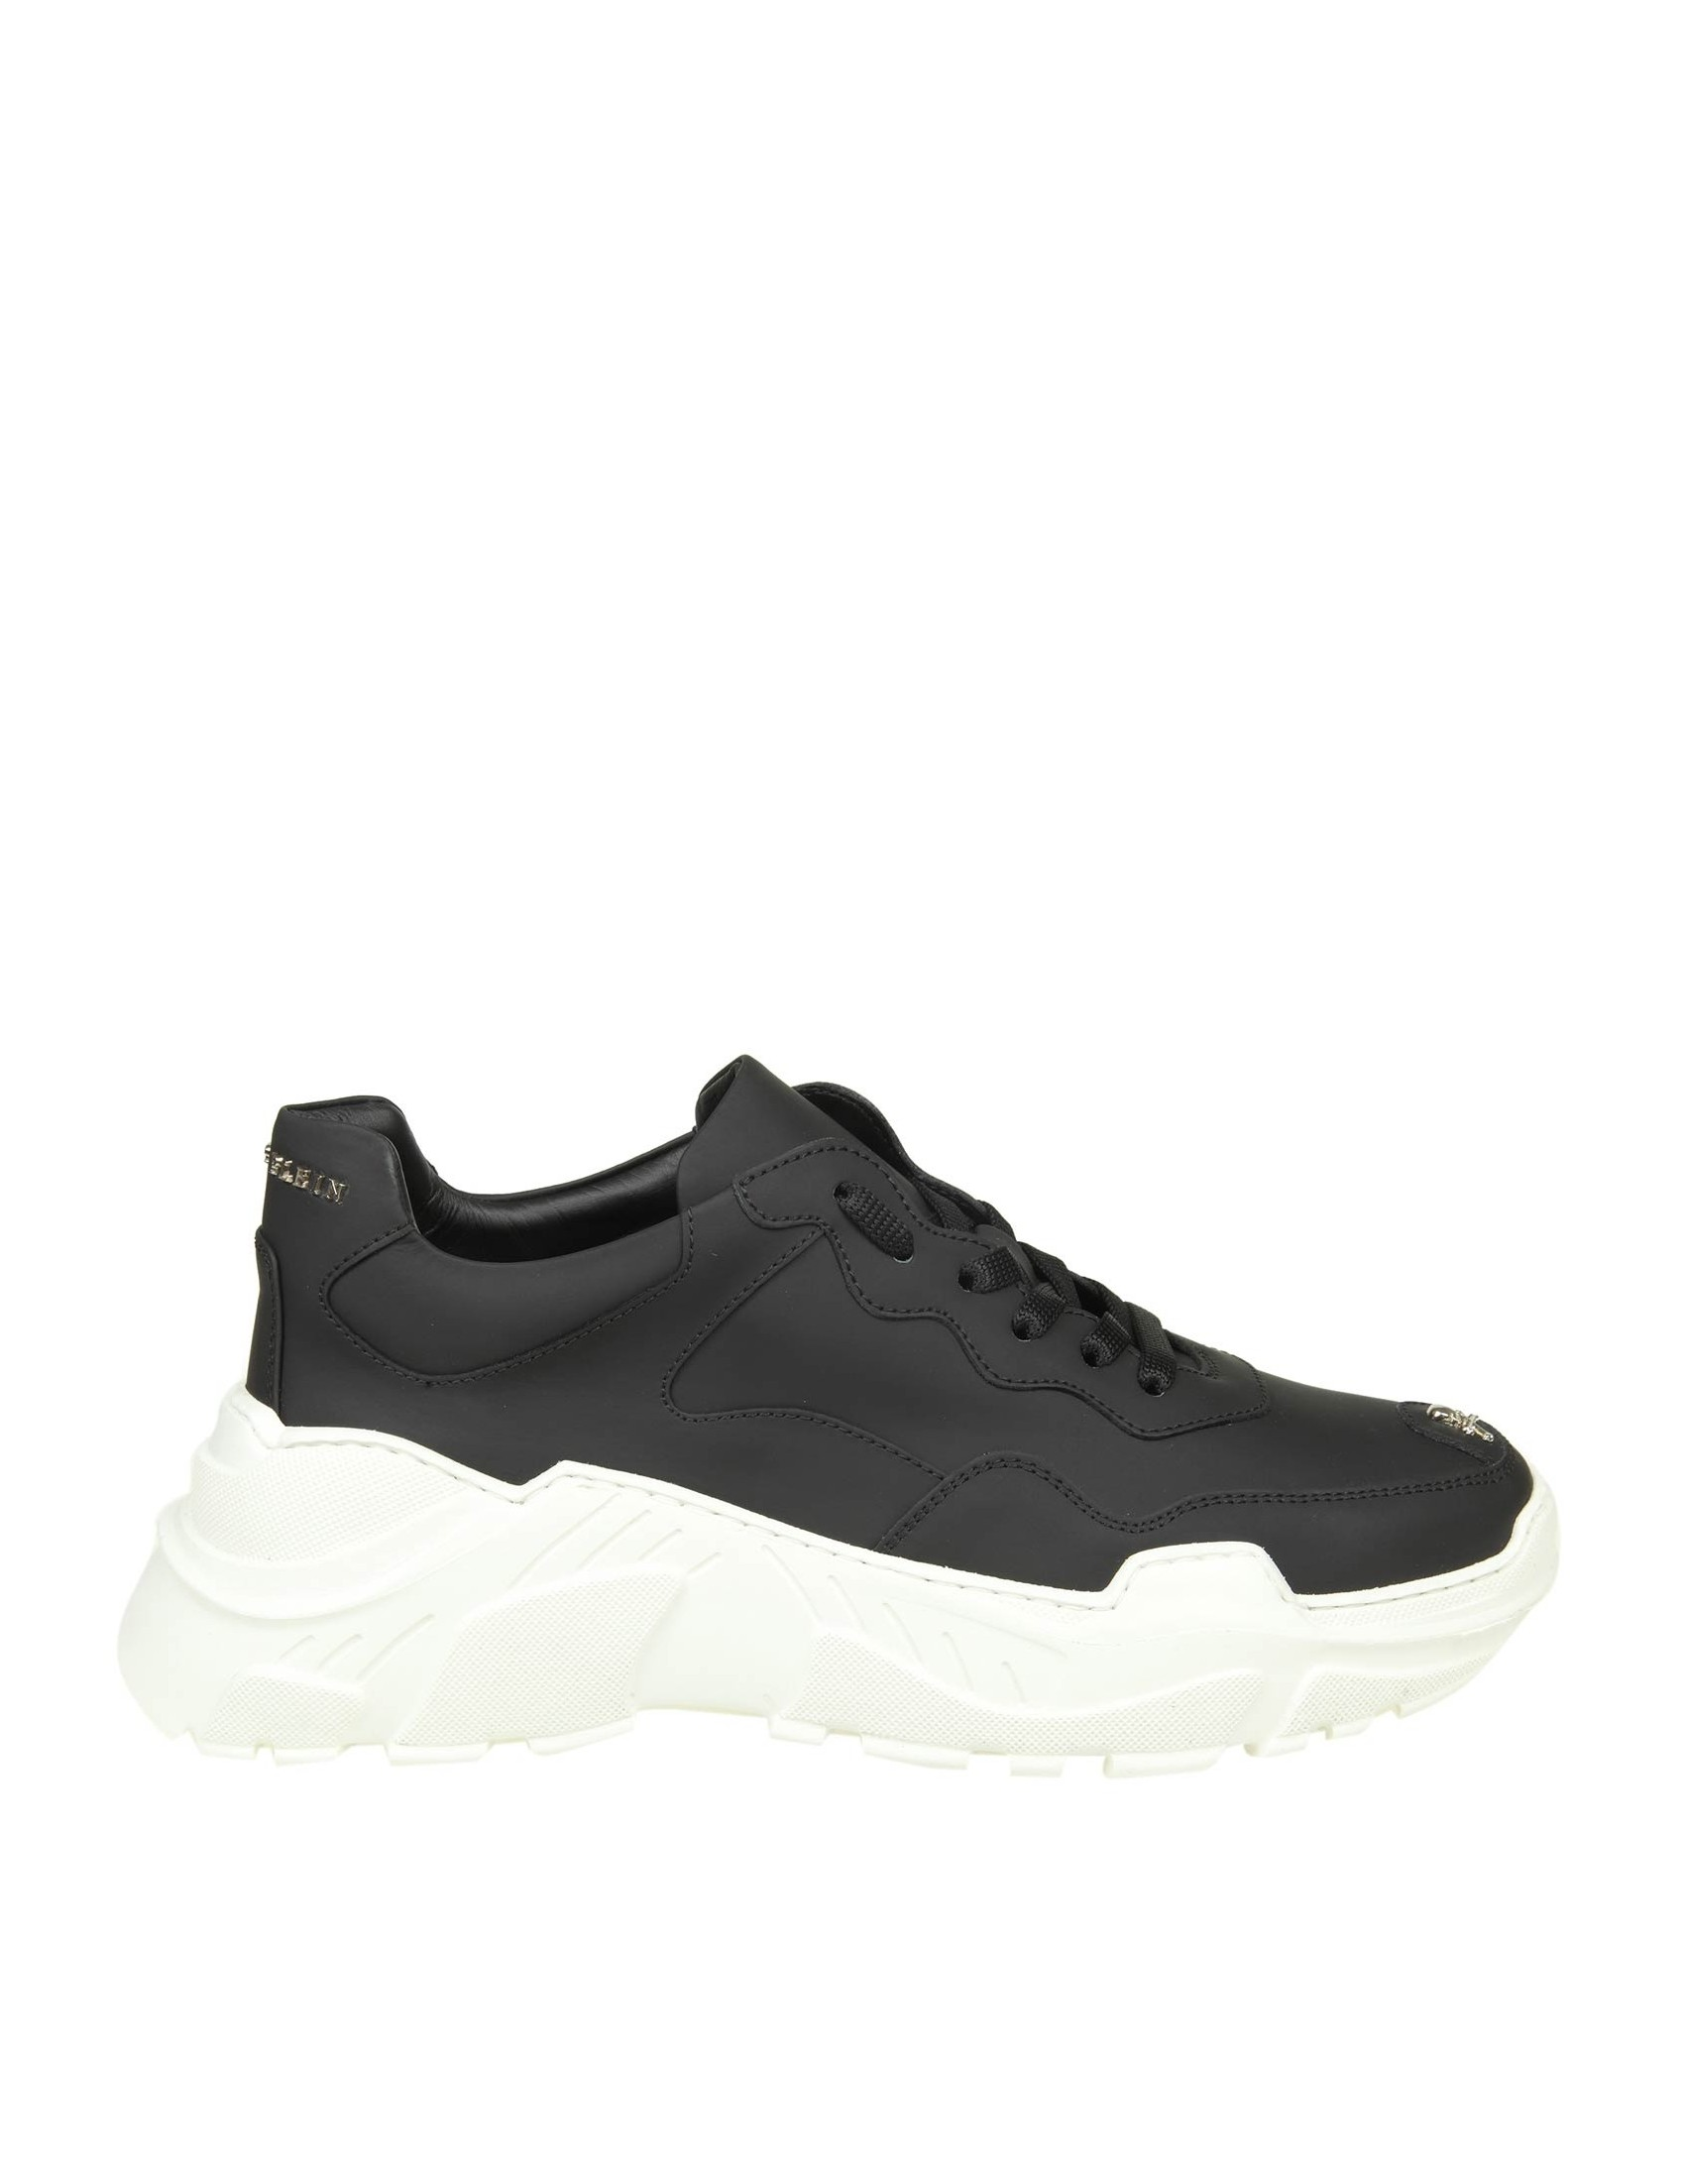 newest collection 7c53a 144a7 philipp-plein-sneakers-runner-original-in-pelle-nera.jpg